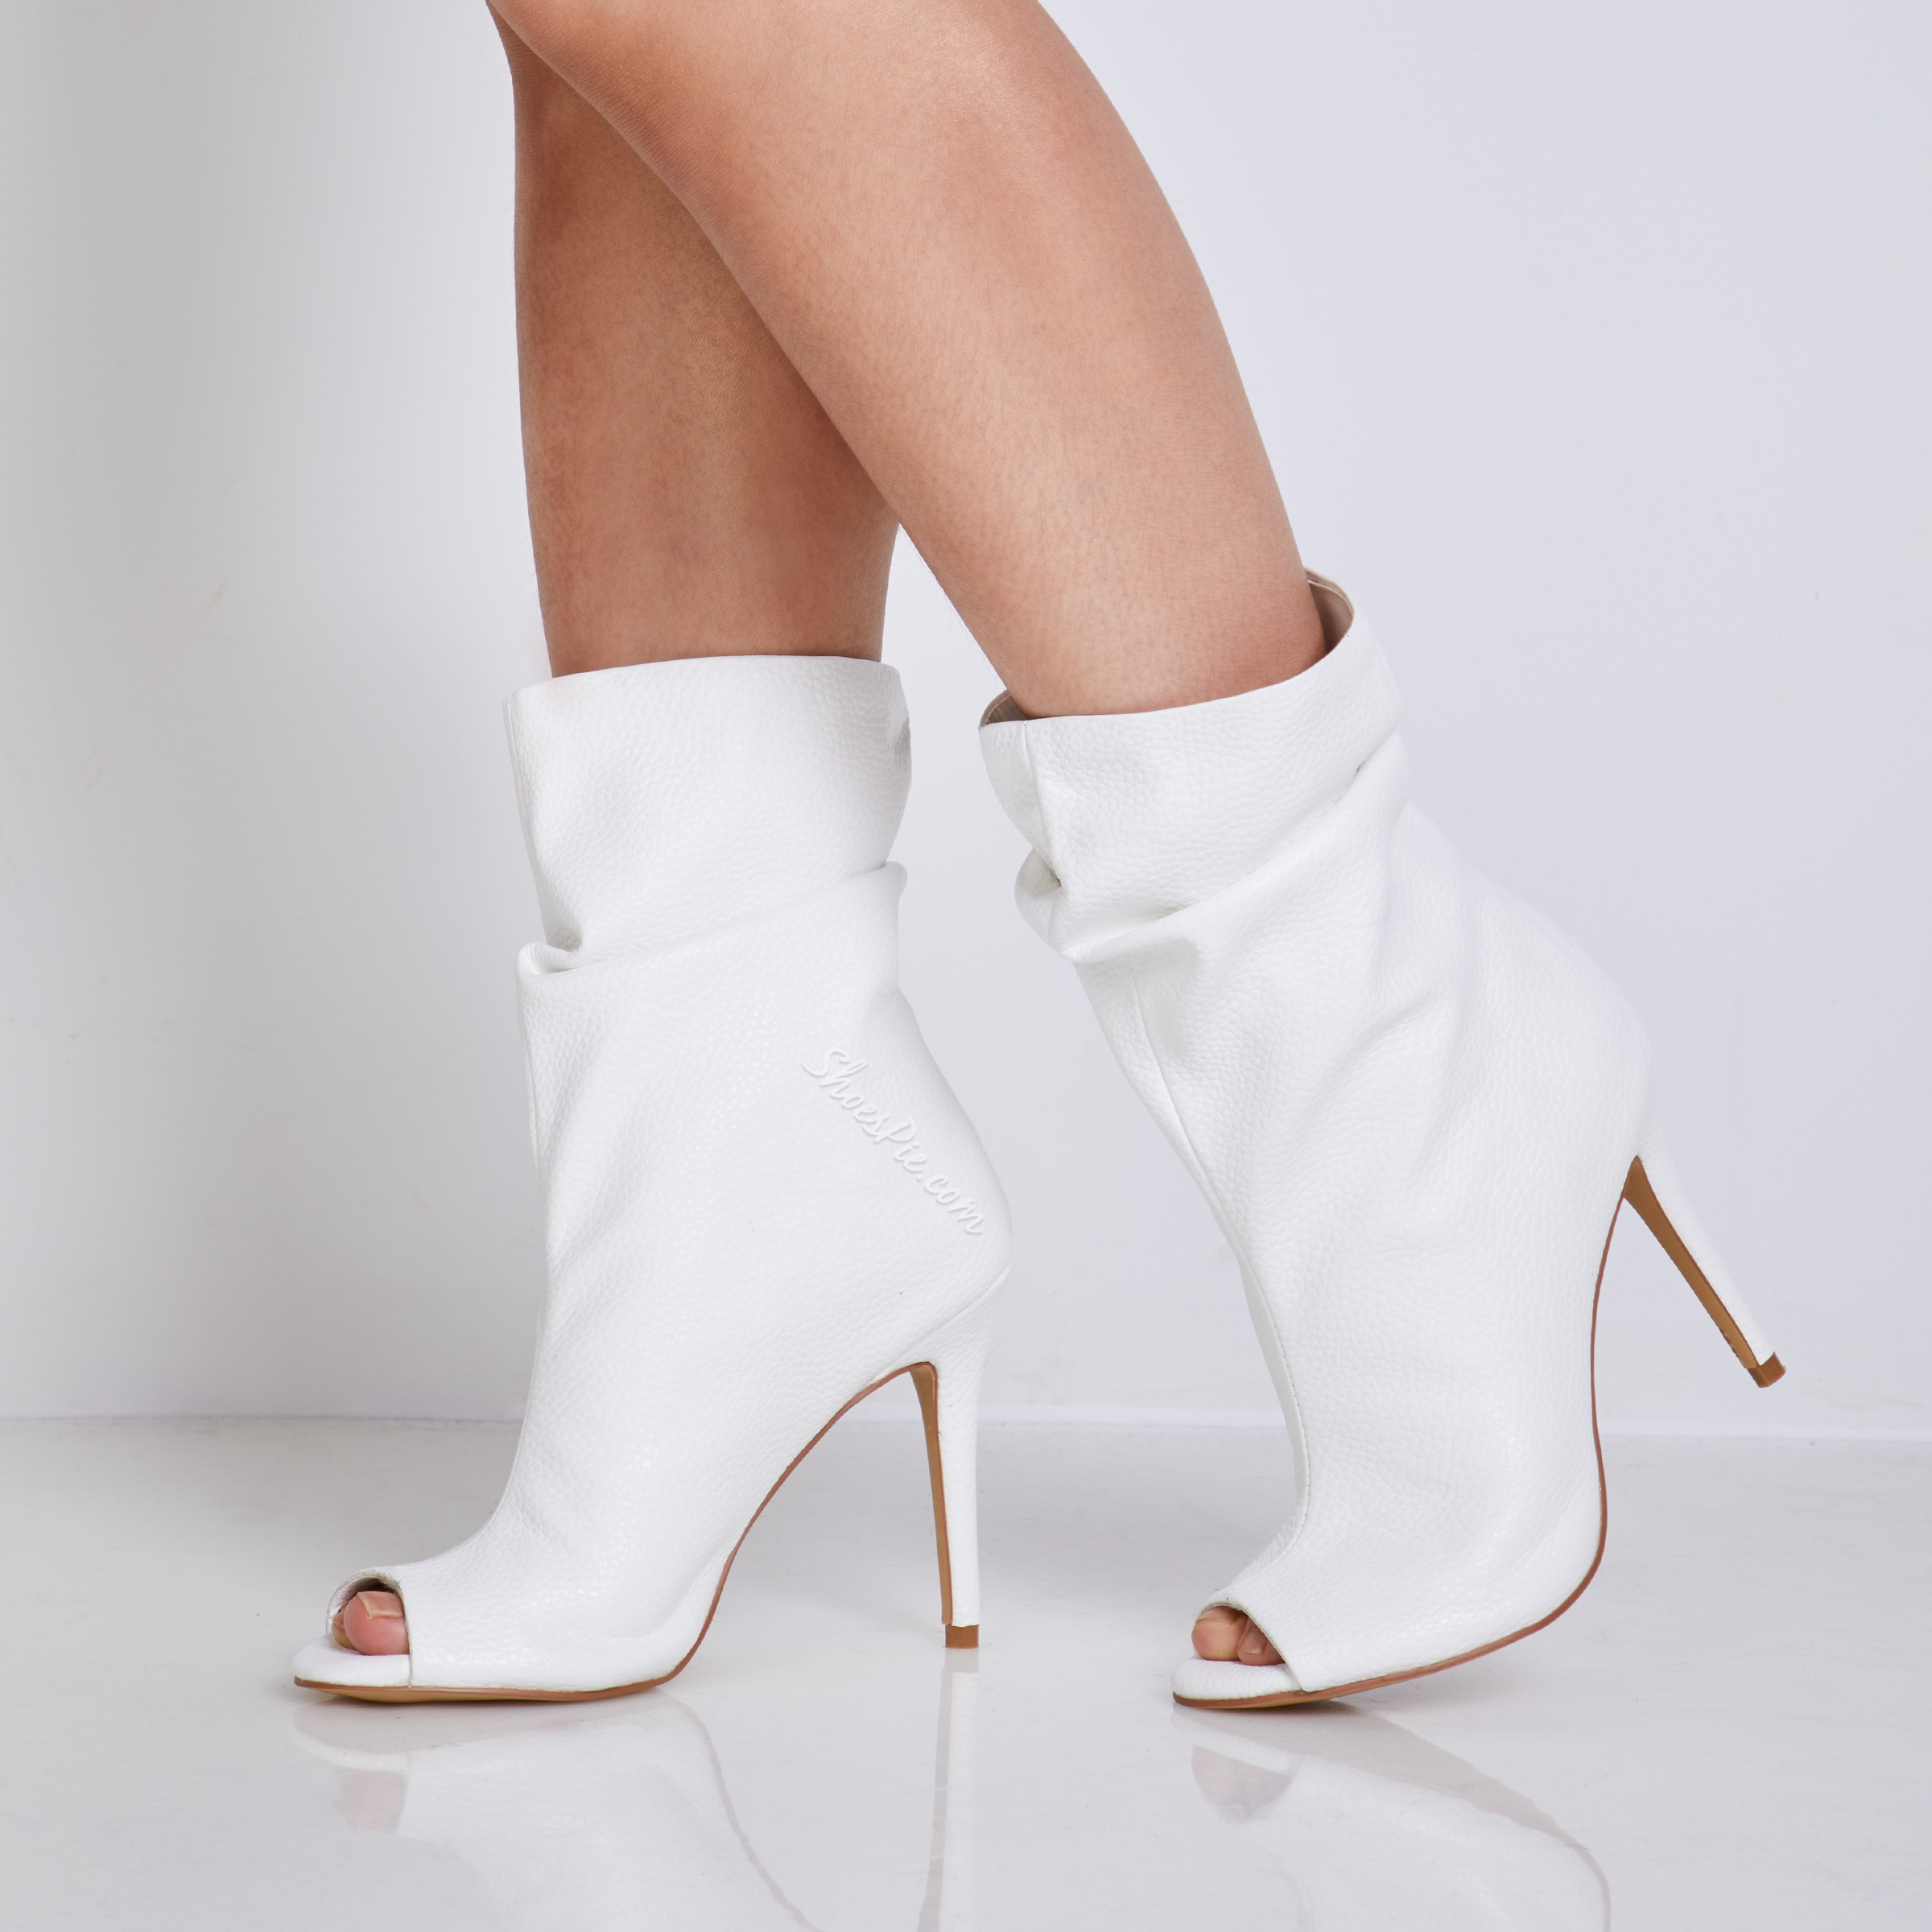 Shoespie Peep Toe Stiletto Heels High Heel Boots